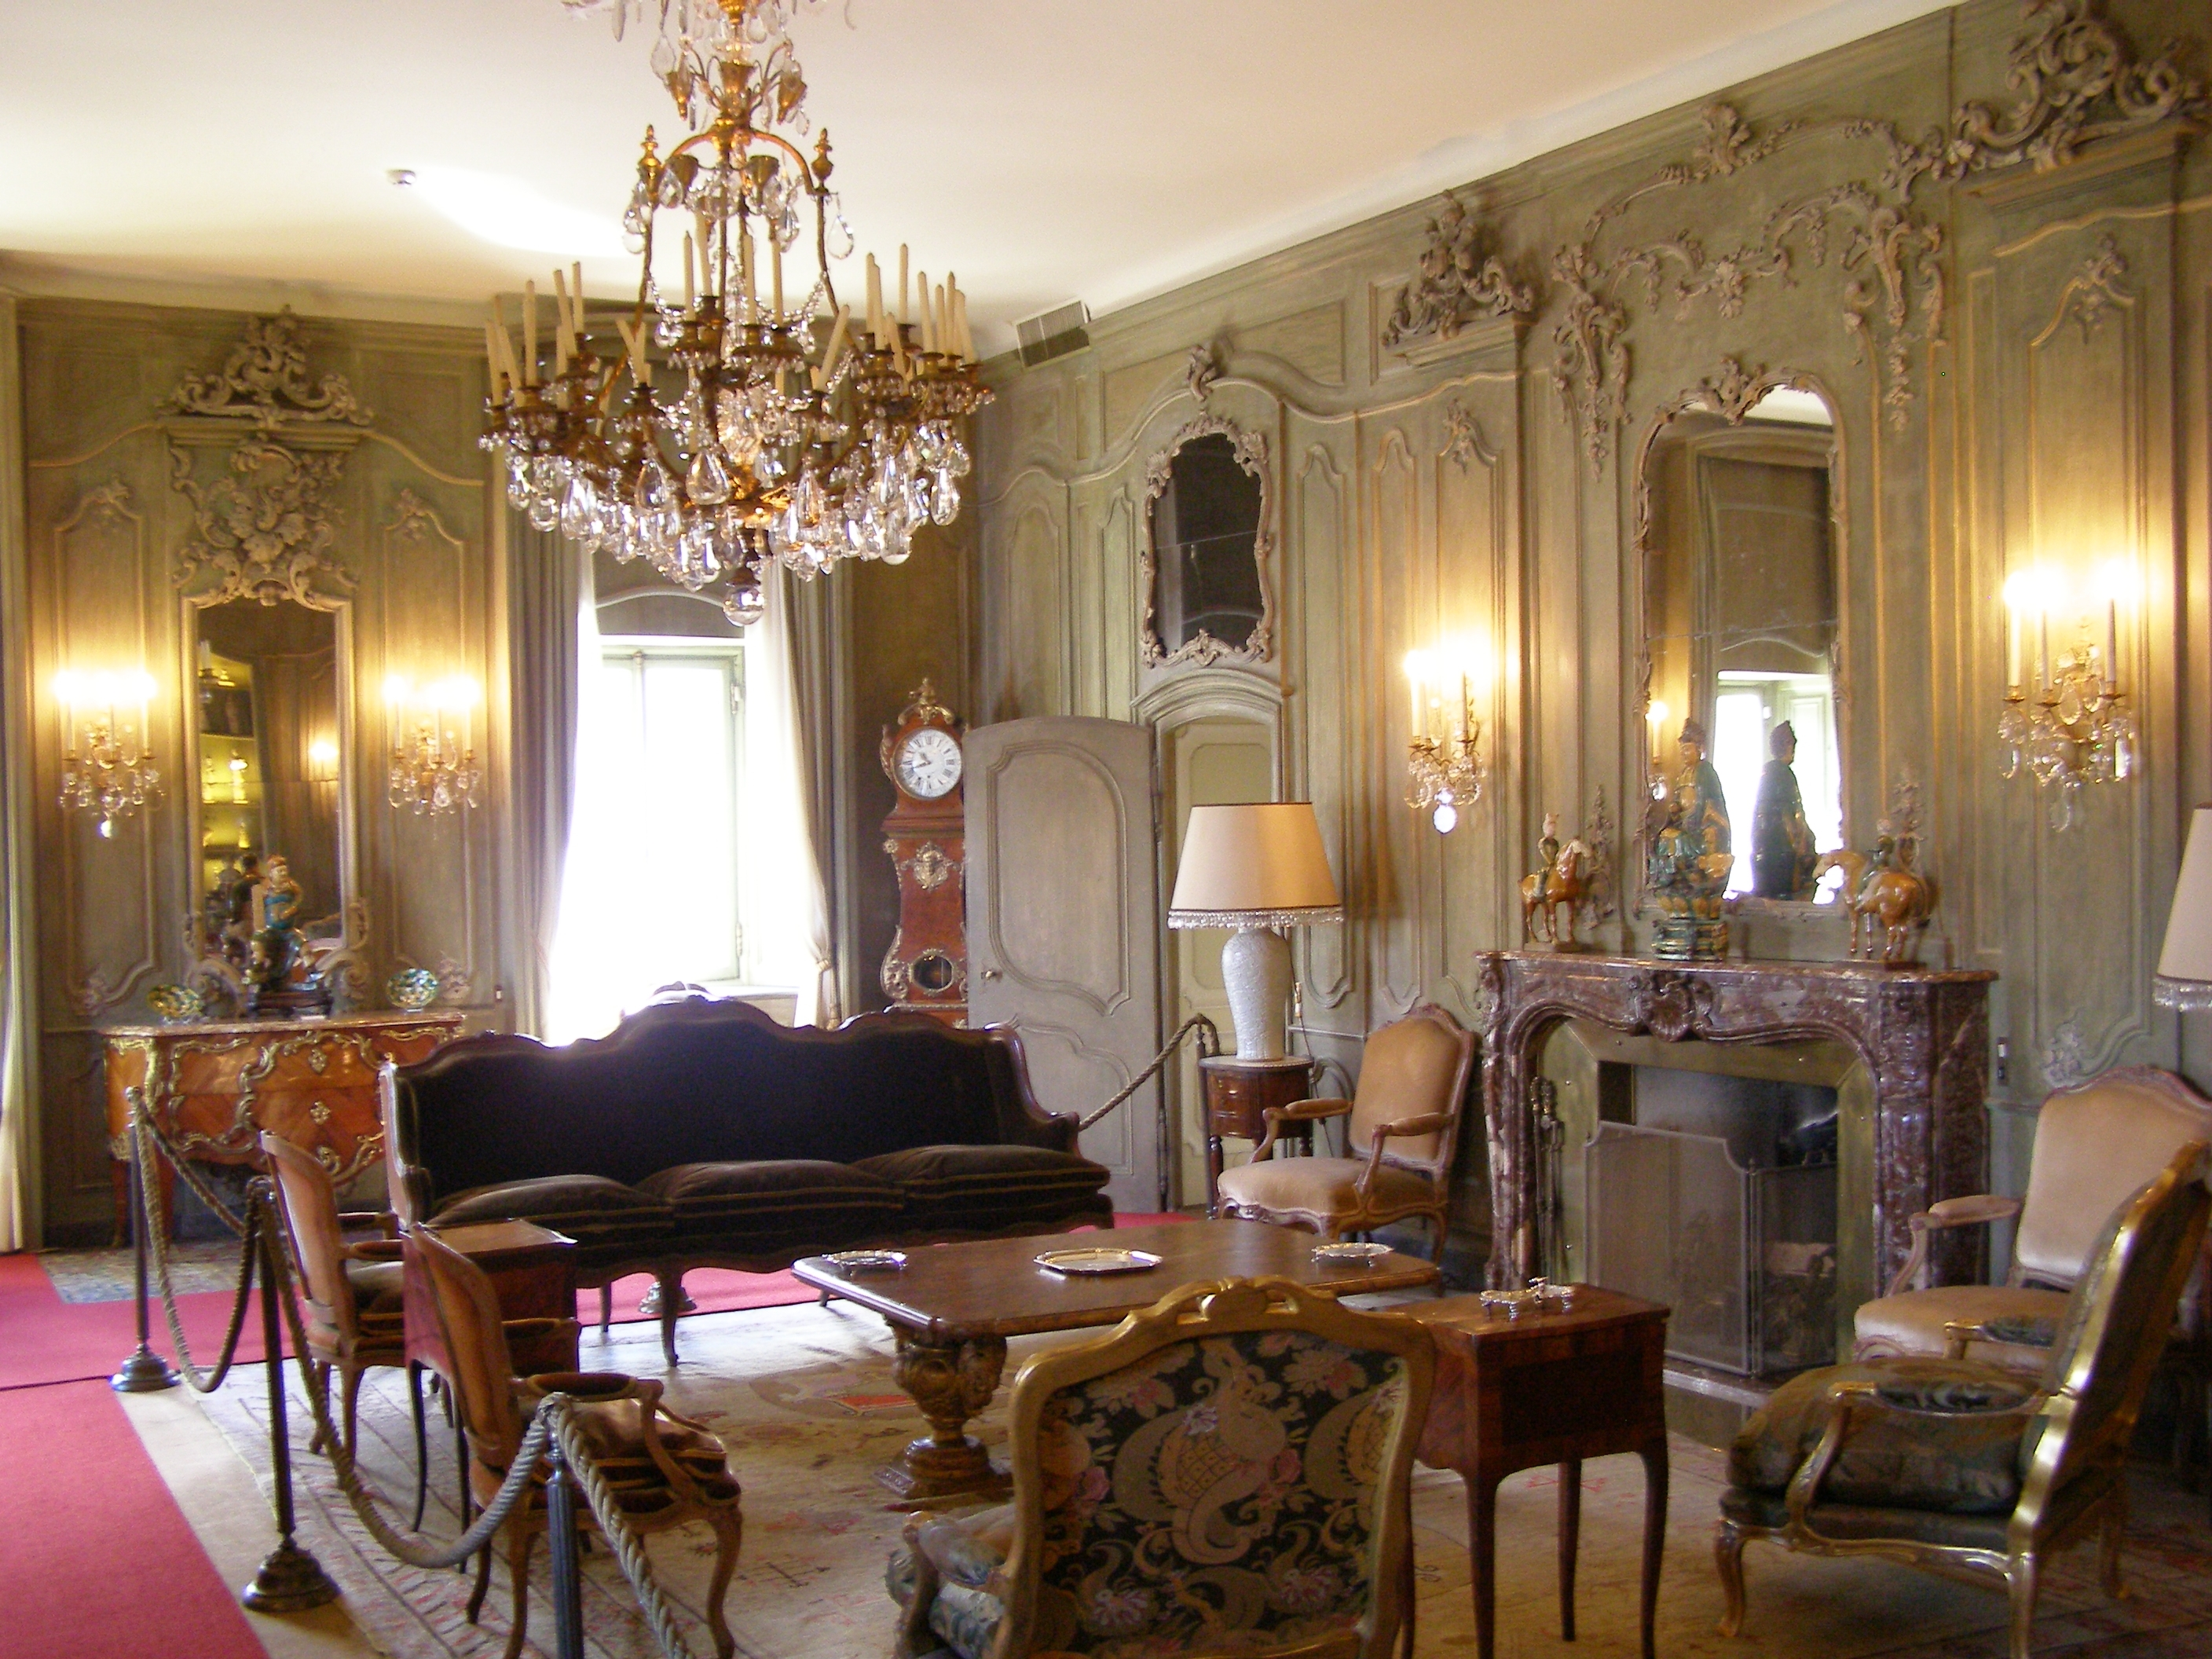 File lenno villa balbianello wnetrze wikimedia commons for Victorian villa interior design